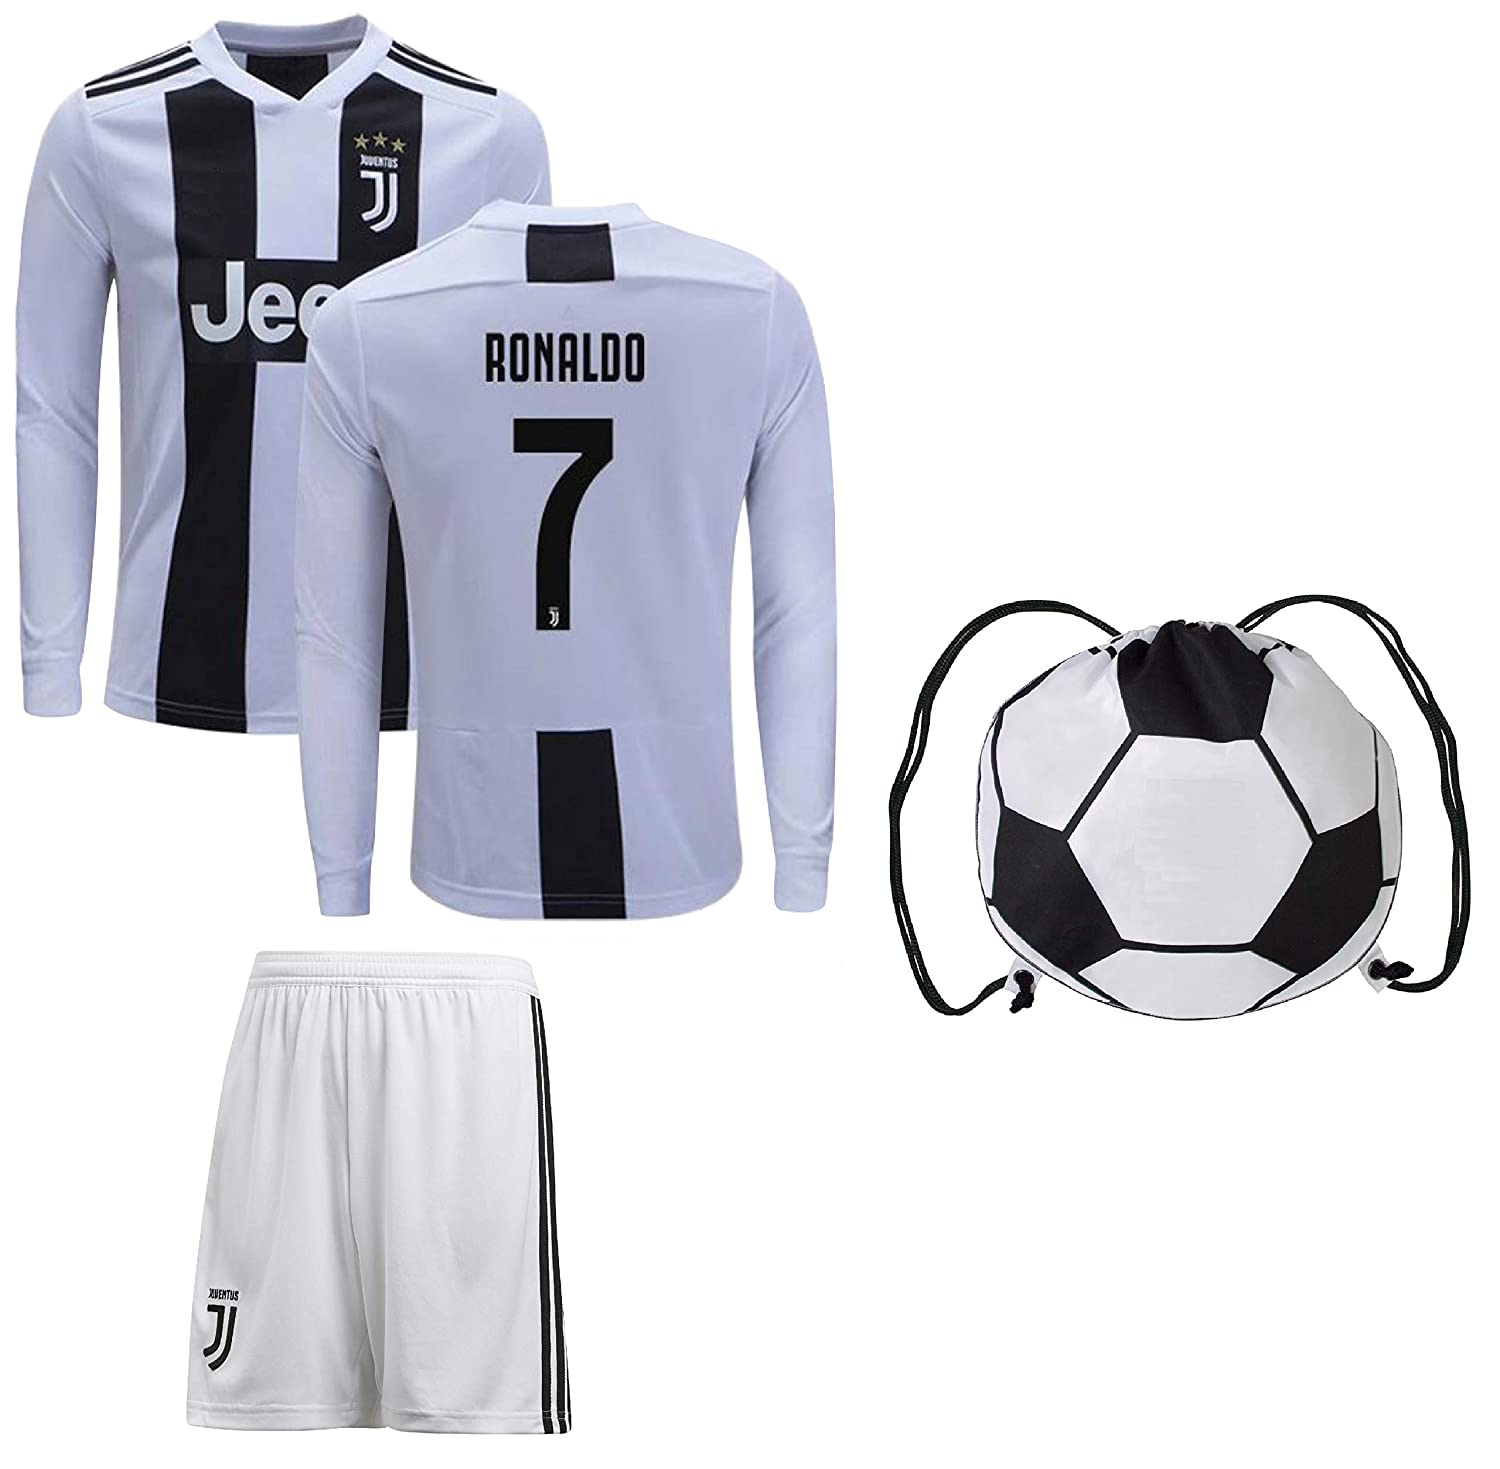 low priced 58e84 38d65 Juventus Cristiano Ronaldo Jersey #7 Youth OR Adult Soccer Gift Set ✓  Ronaldo Soccer Jersey ✓ Shorts ✓ Soccer Backpack ✓ Home or Away